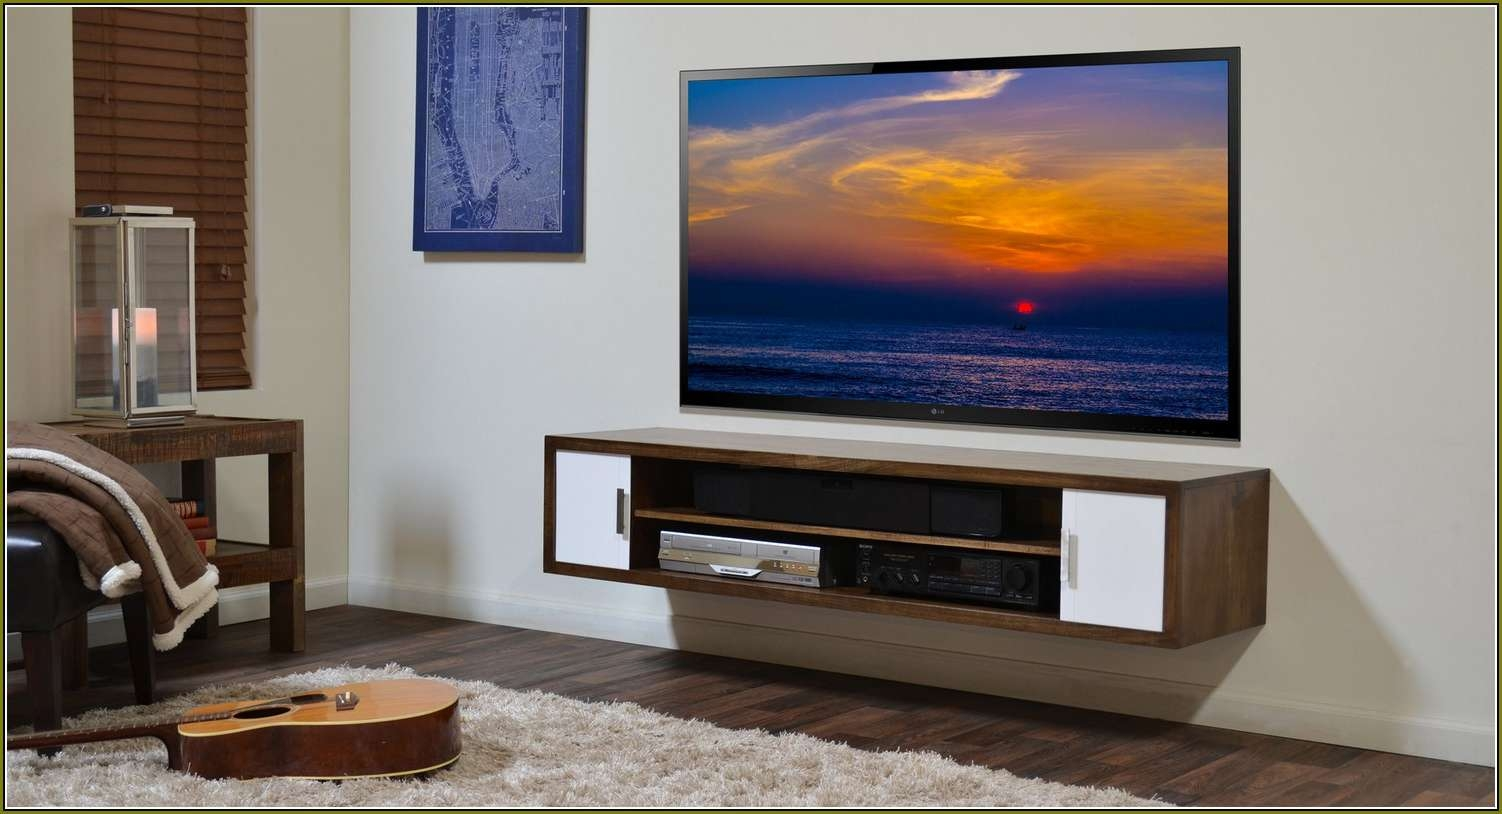 Floating Tv Cabinet Uk | Home Design Ideas Pertaining To Floating Tv Cabinets (View 7 of 20)